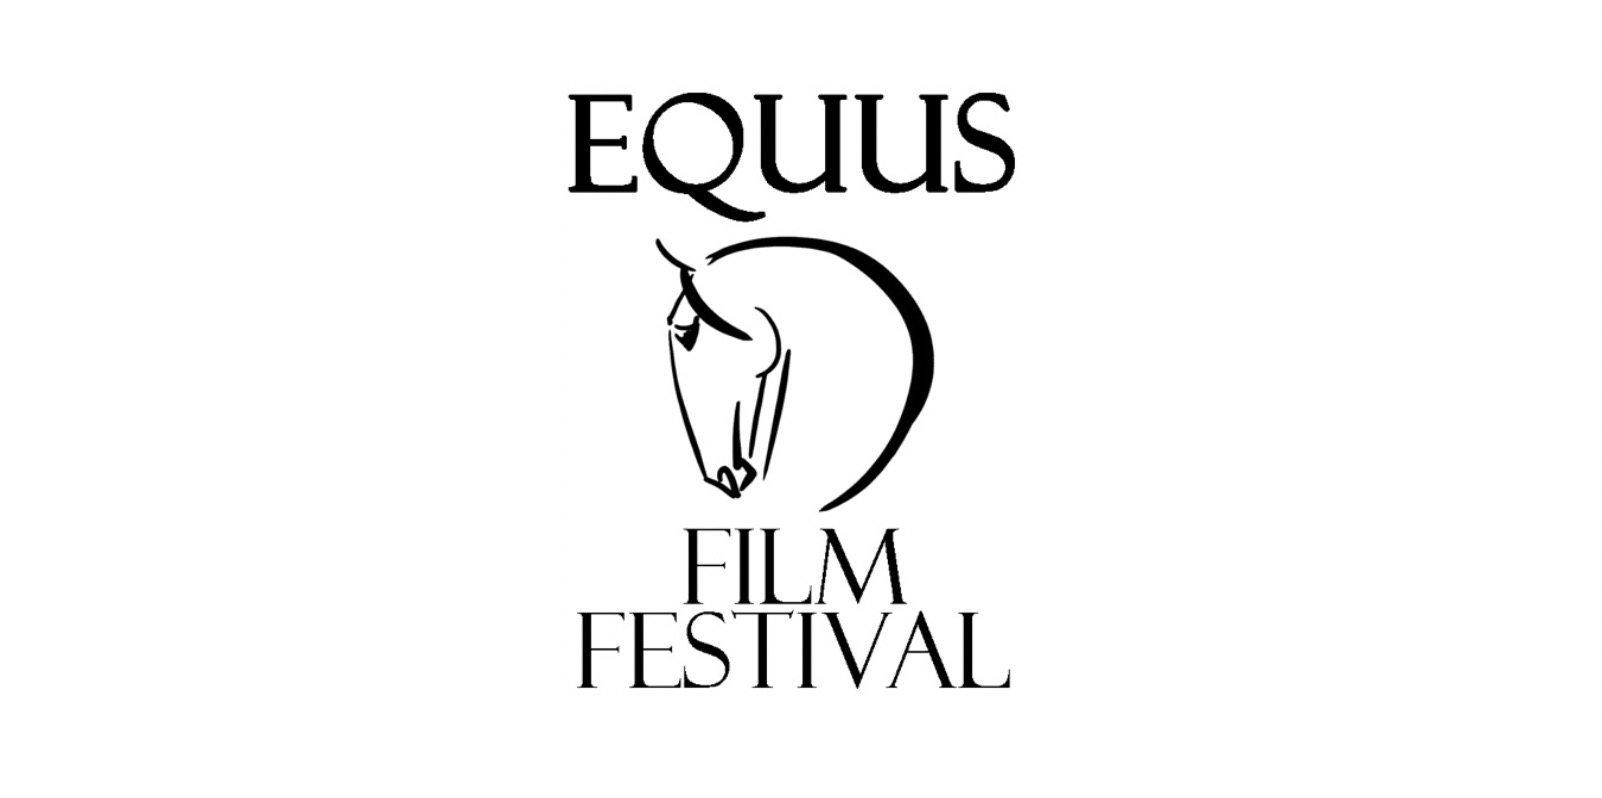 A Complete Listing of All the Films Playing at the Equus